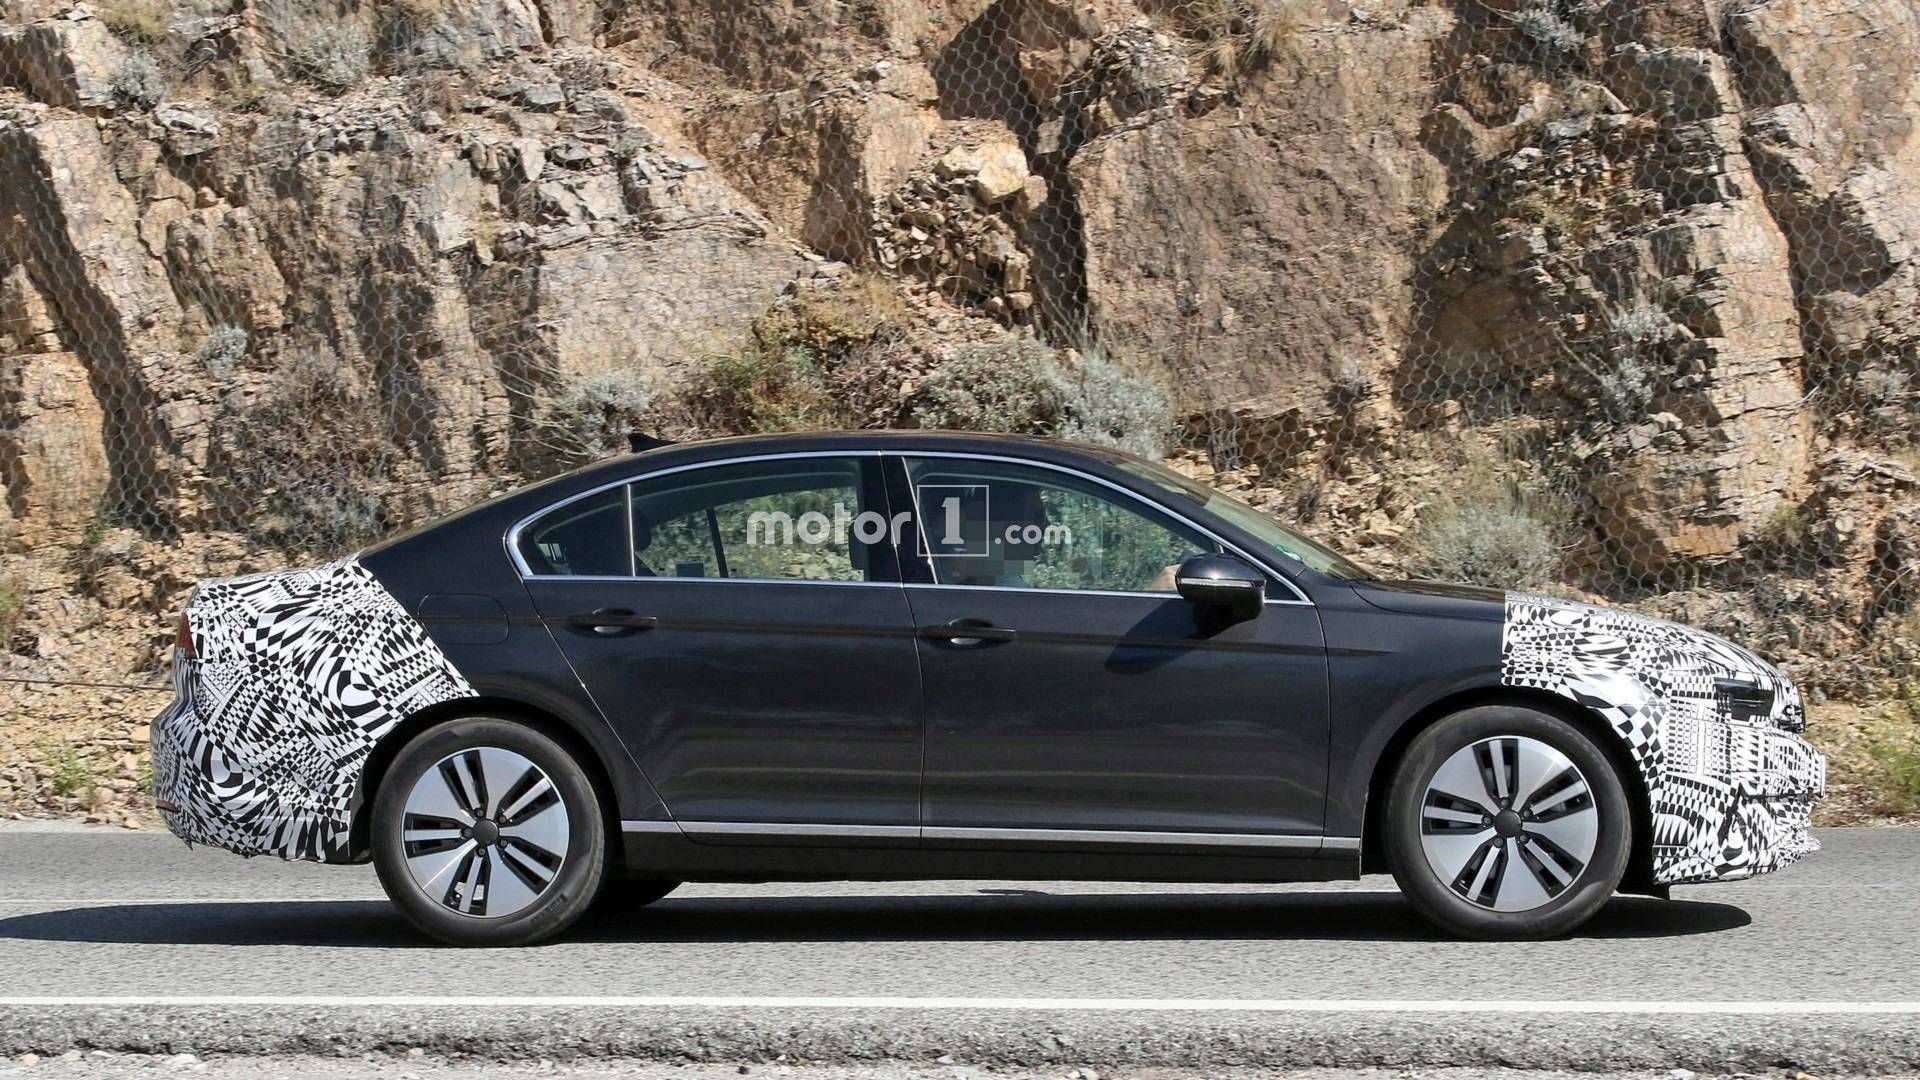 72 Gallery of Volkswagen Hybrid 2019 Performance And New Engine Picture for Volkswagen Hybrid 2019 Performance And New Engine